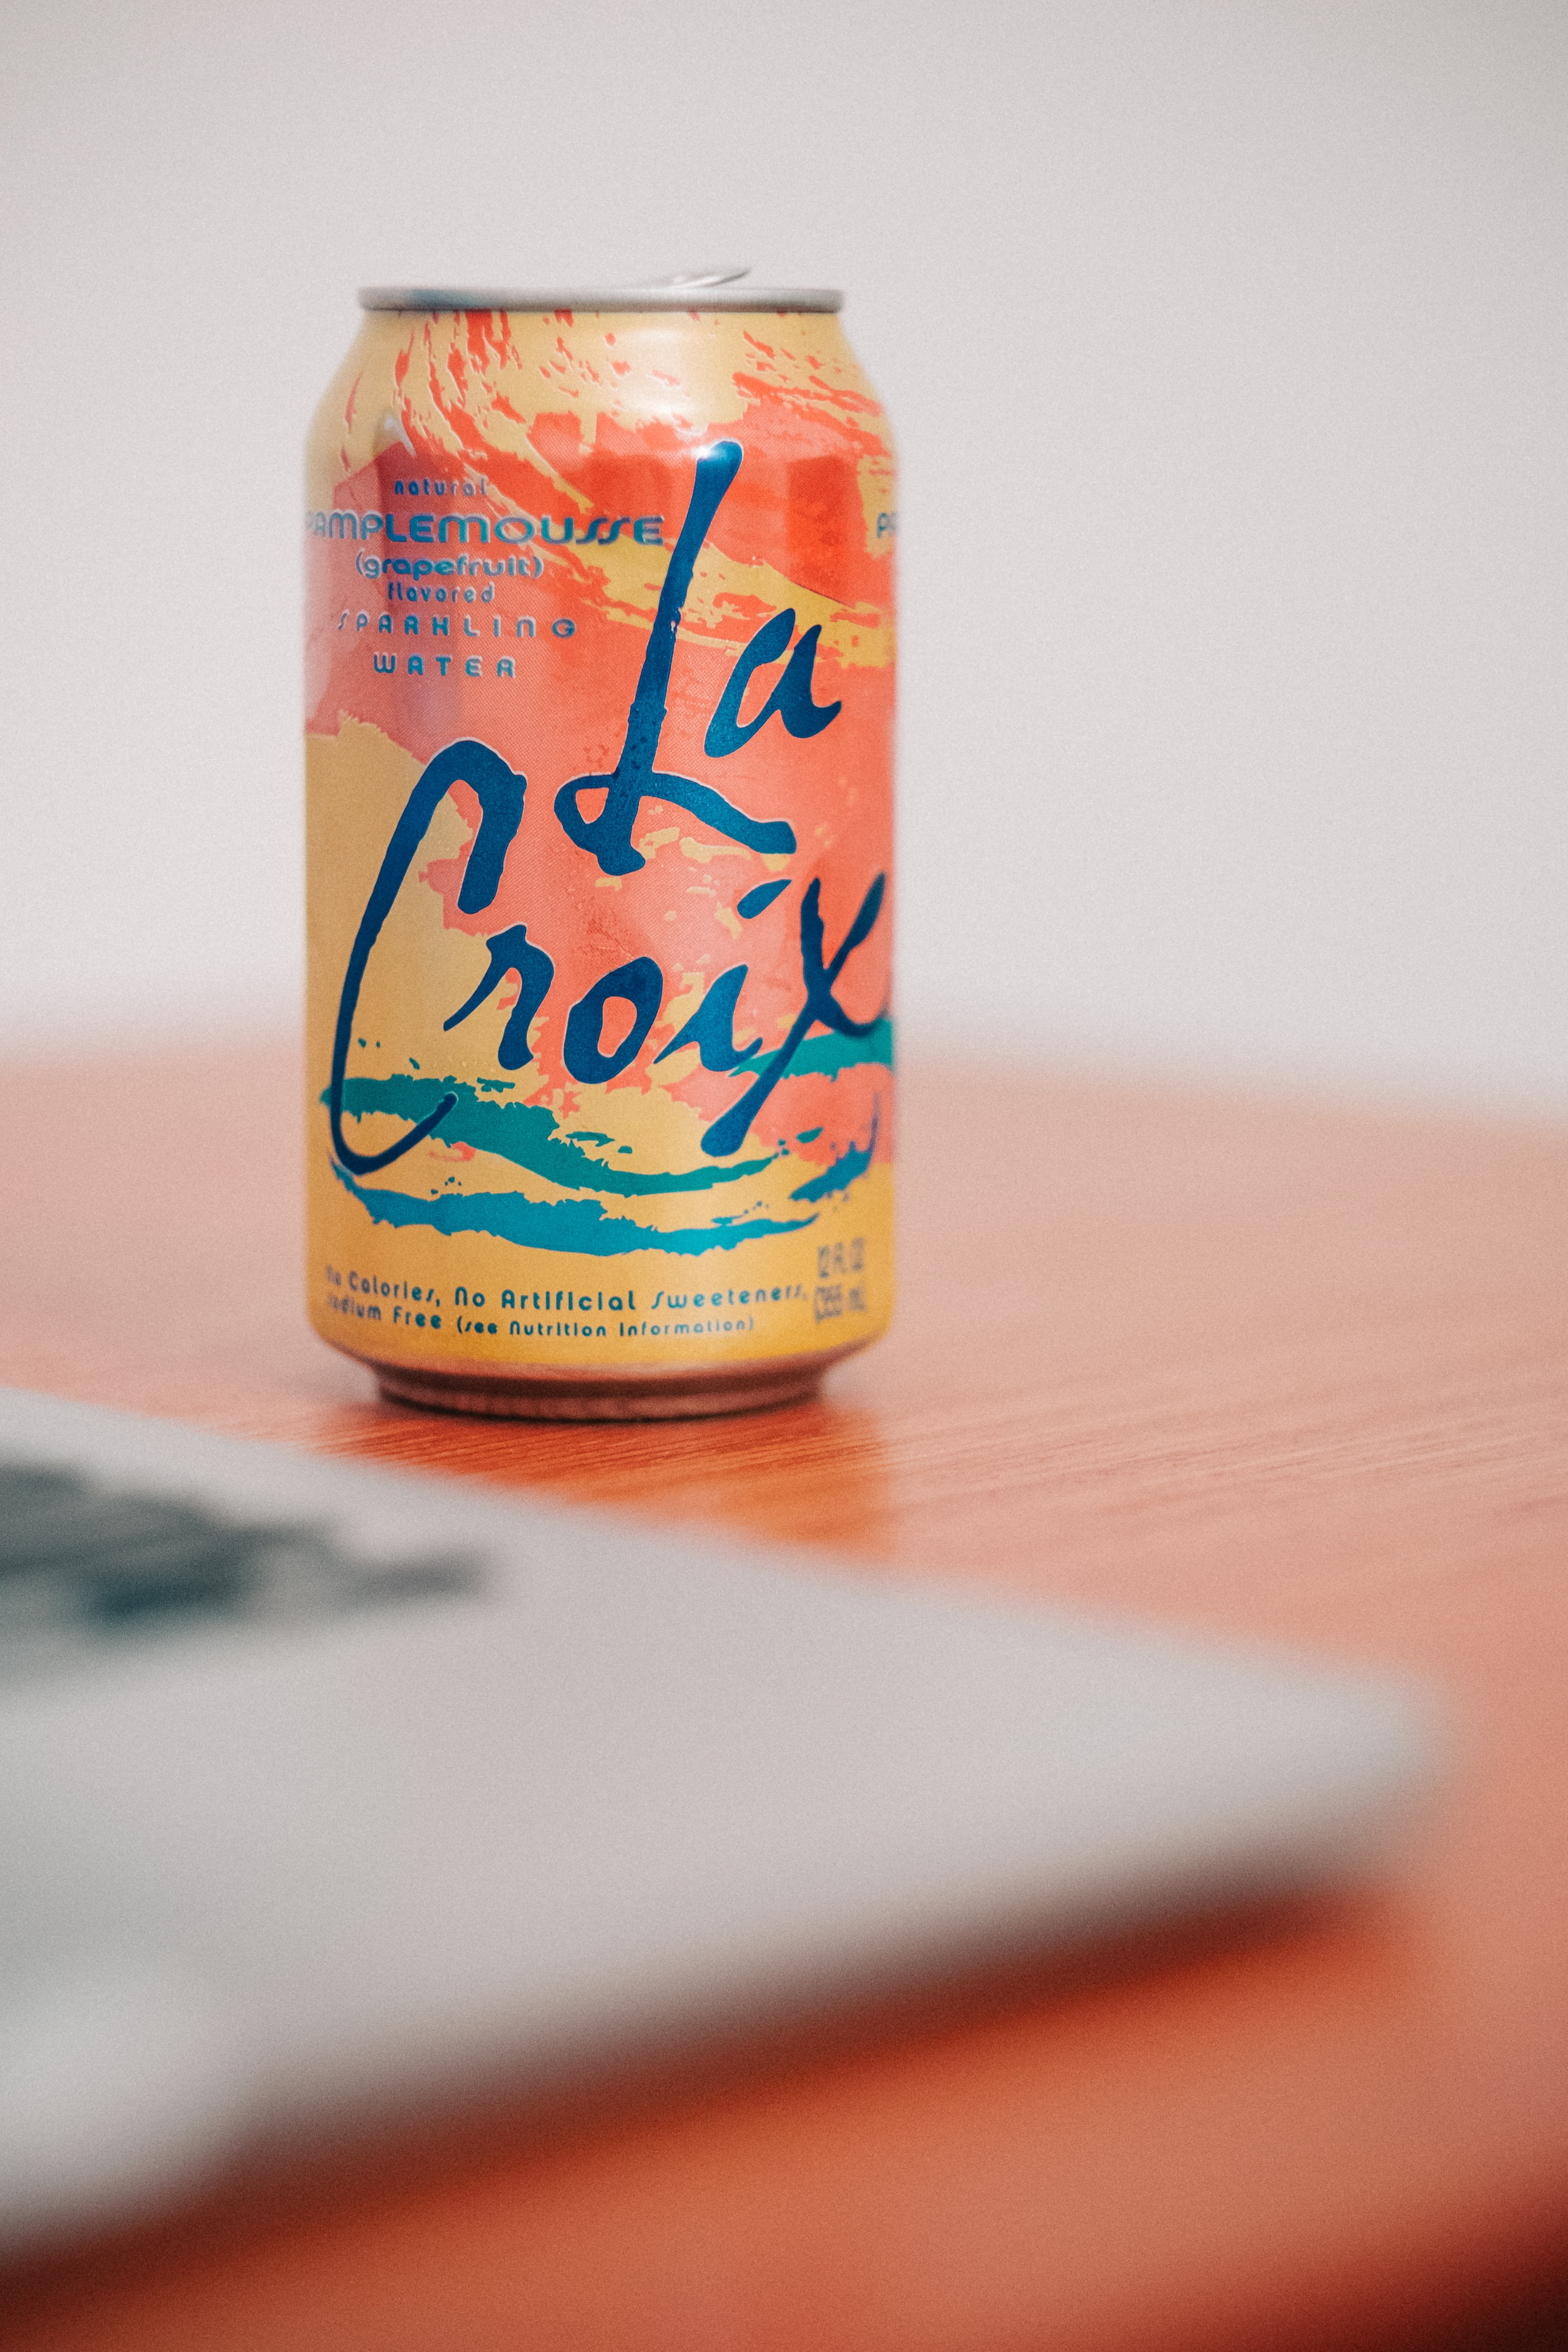 Orange La Croix on a table in brightly lit room